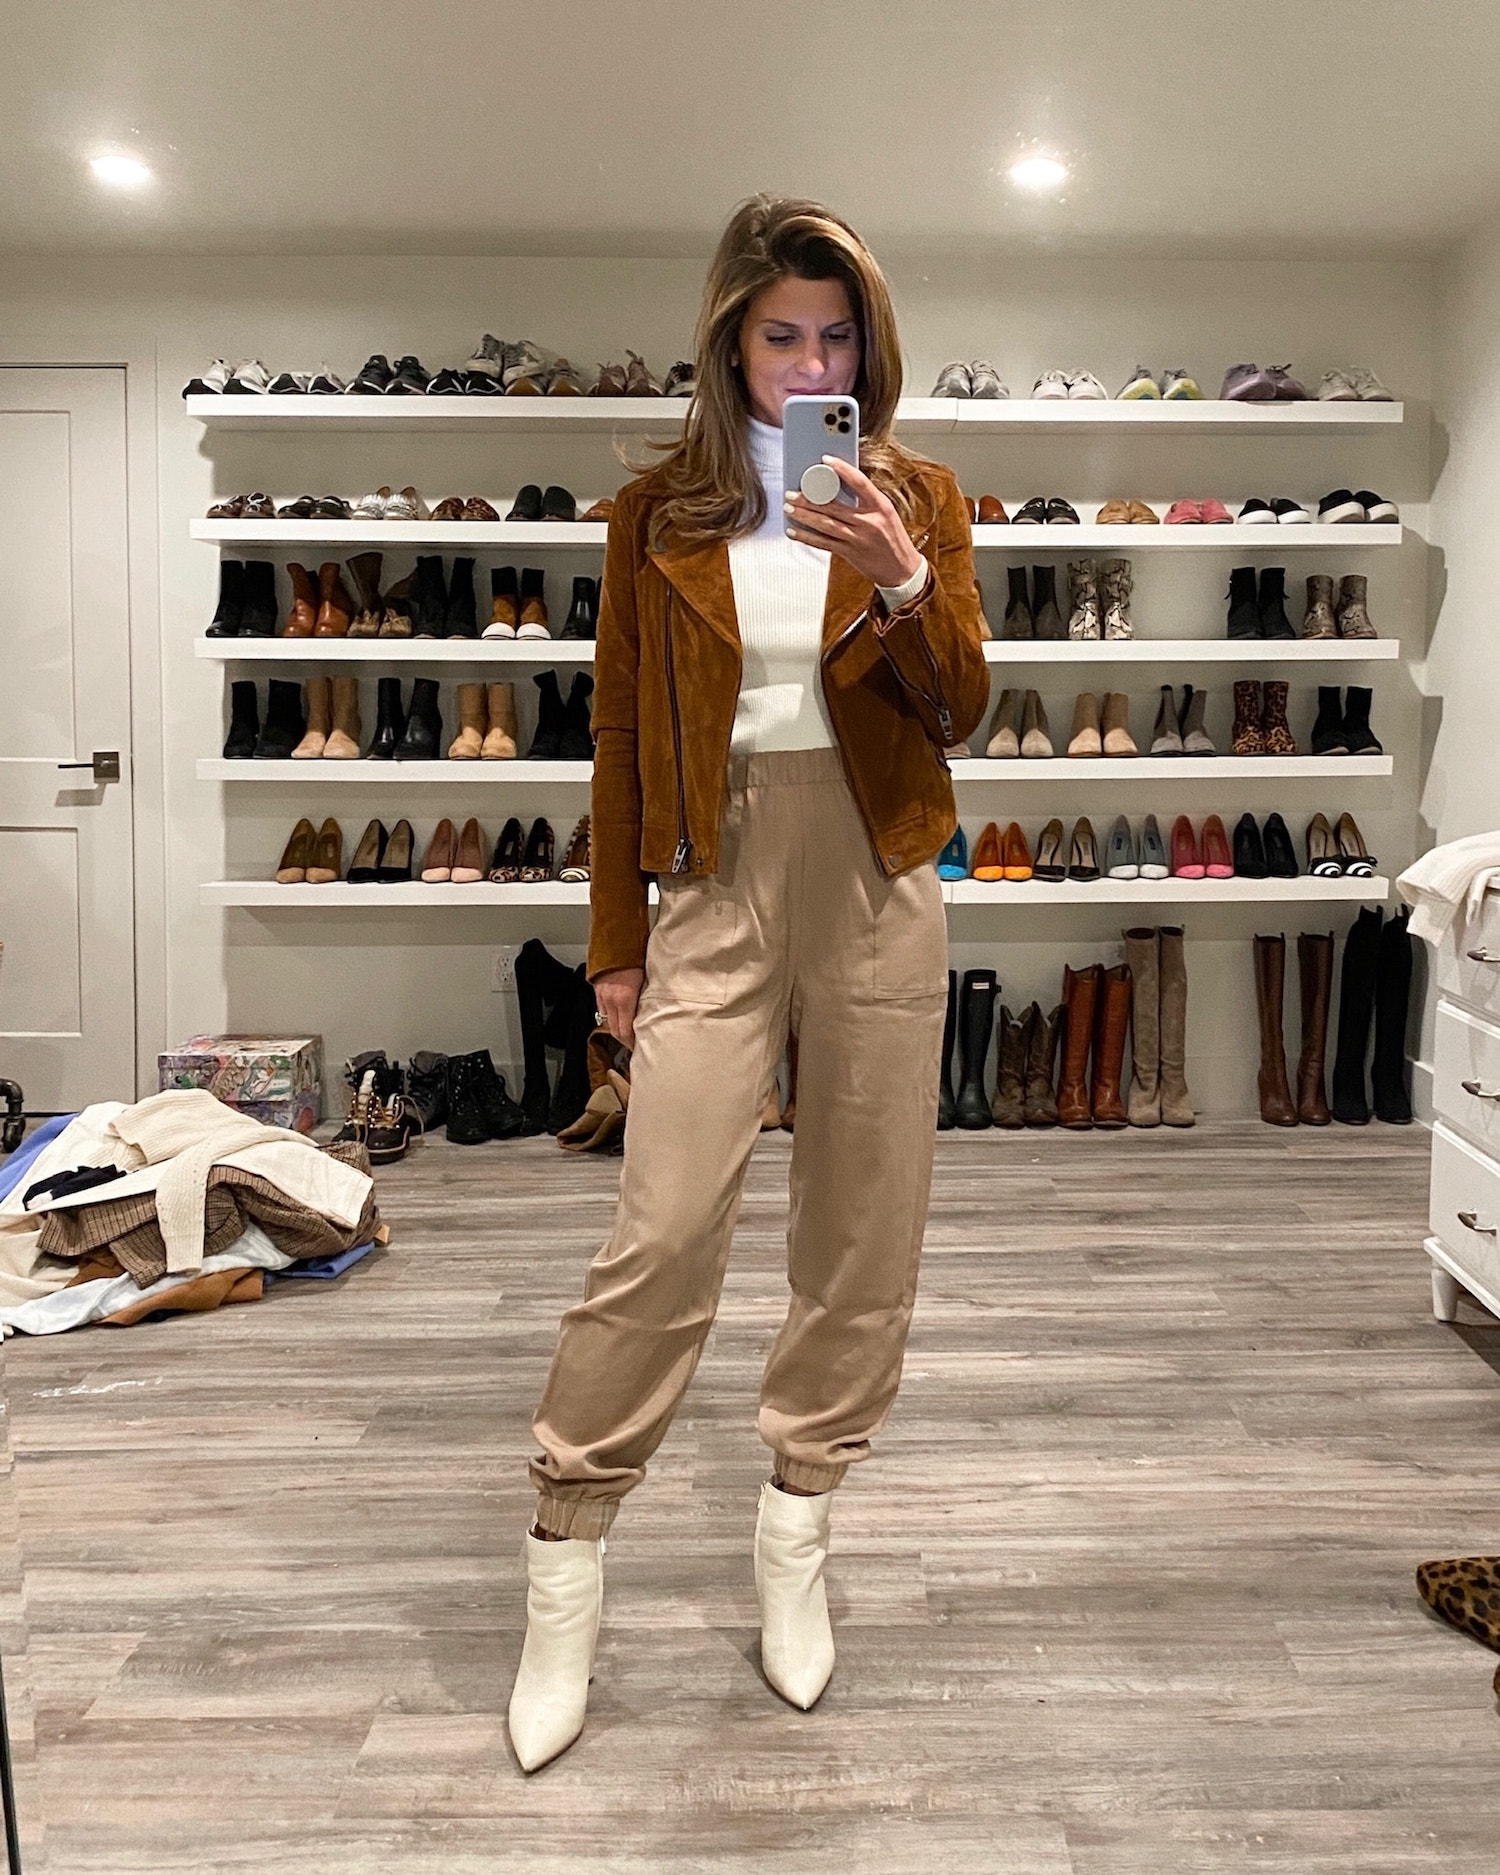 Brighton Keller wearing tan joggers, white turtleneck, suede jacket and white booties